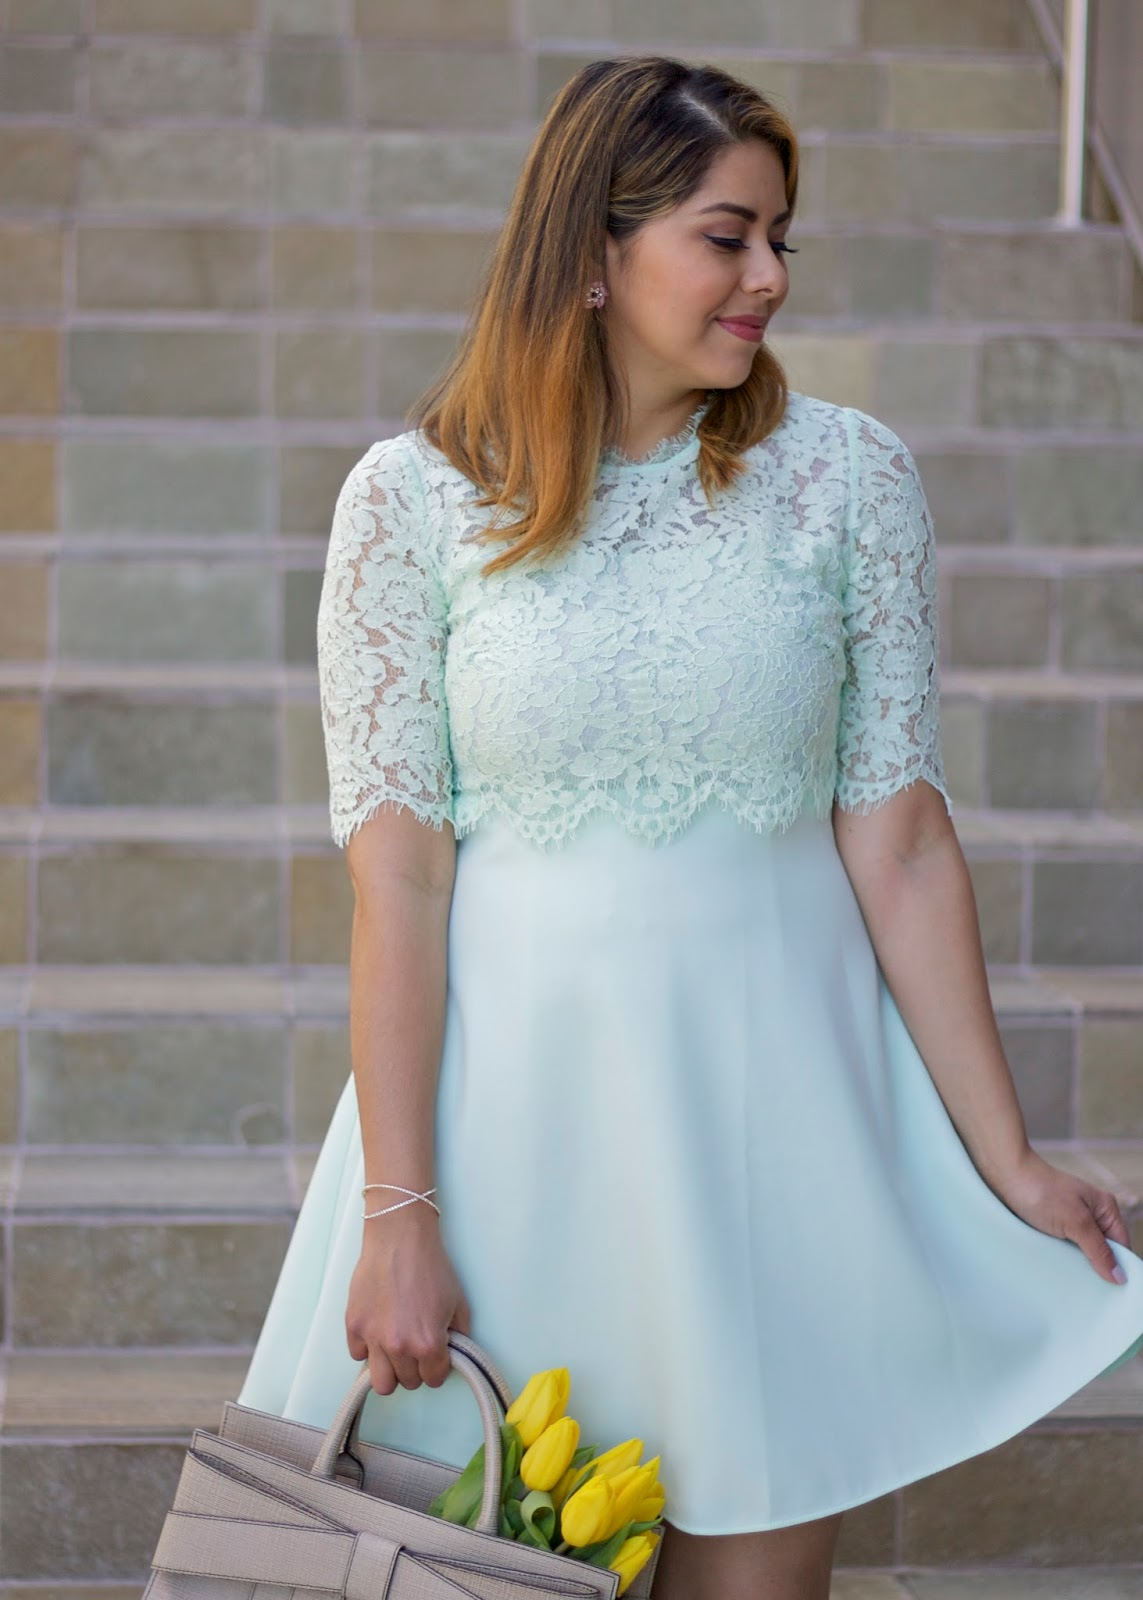 Chicwish mint lace dress, san diego style blogger, san diego fashion, what to wear to an elegant brunch